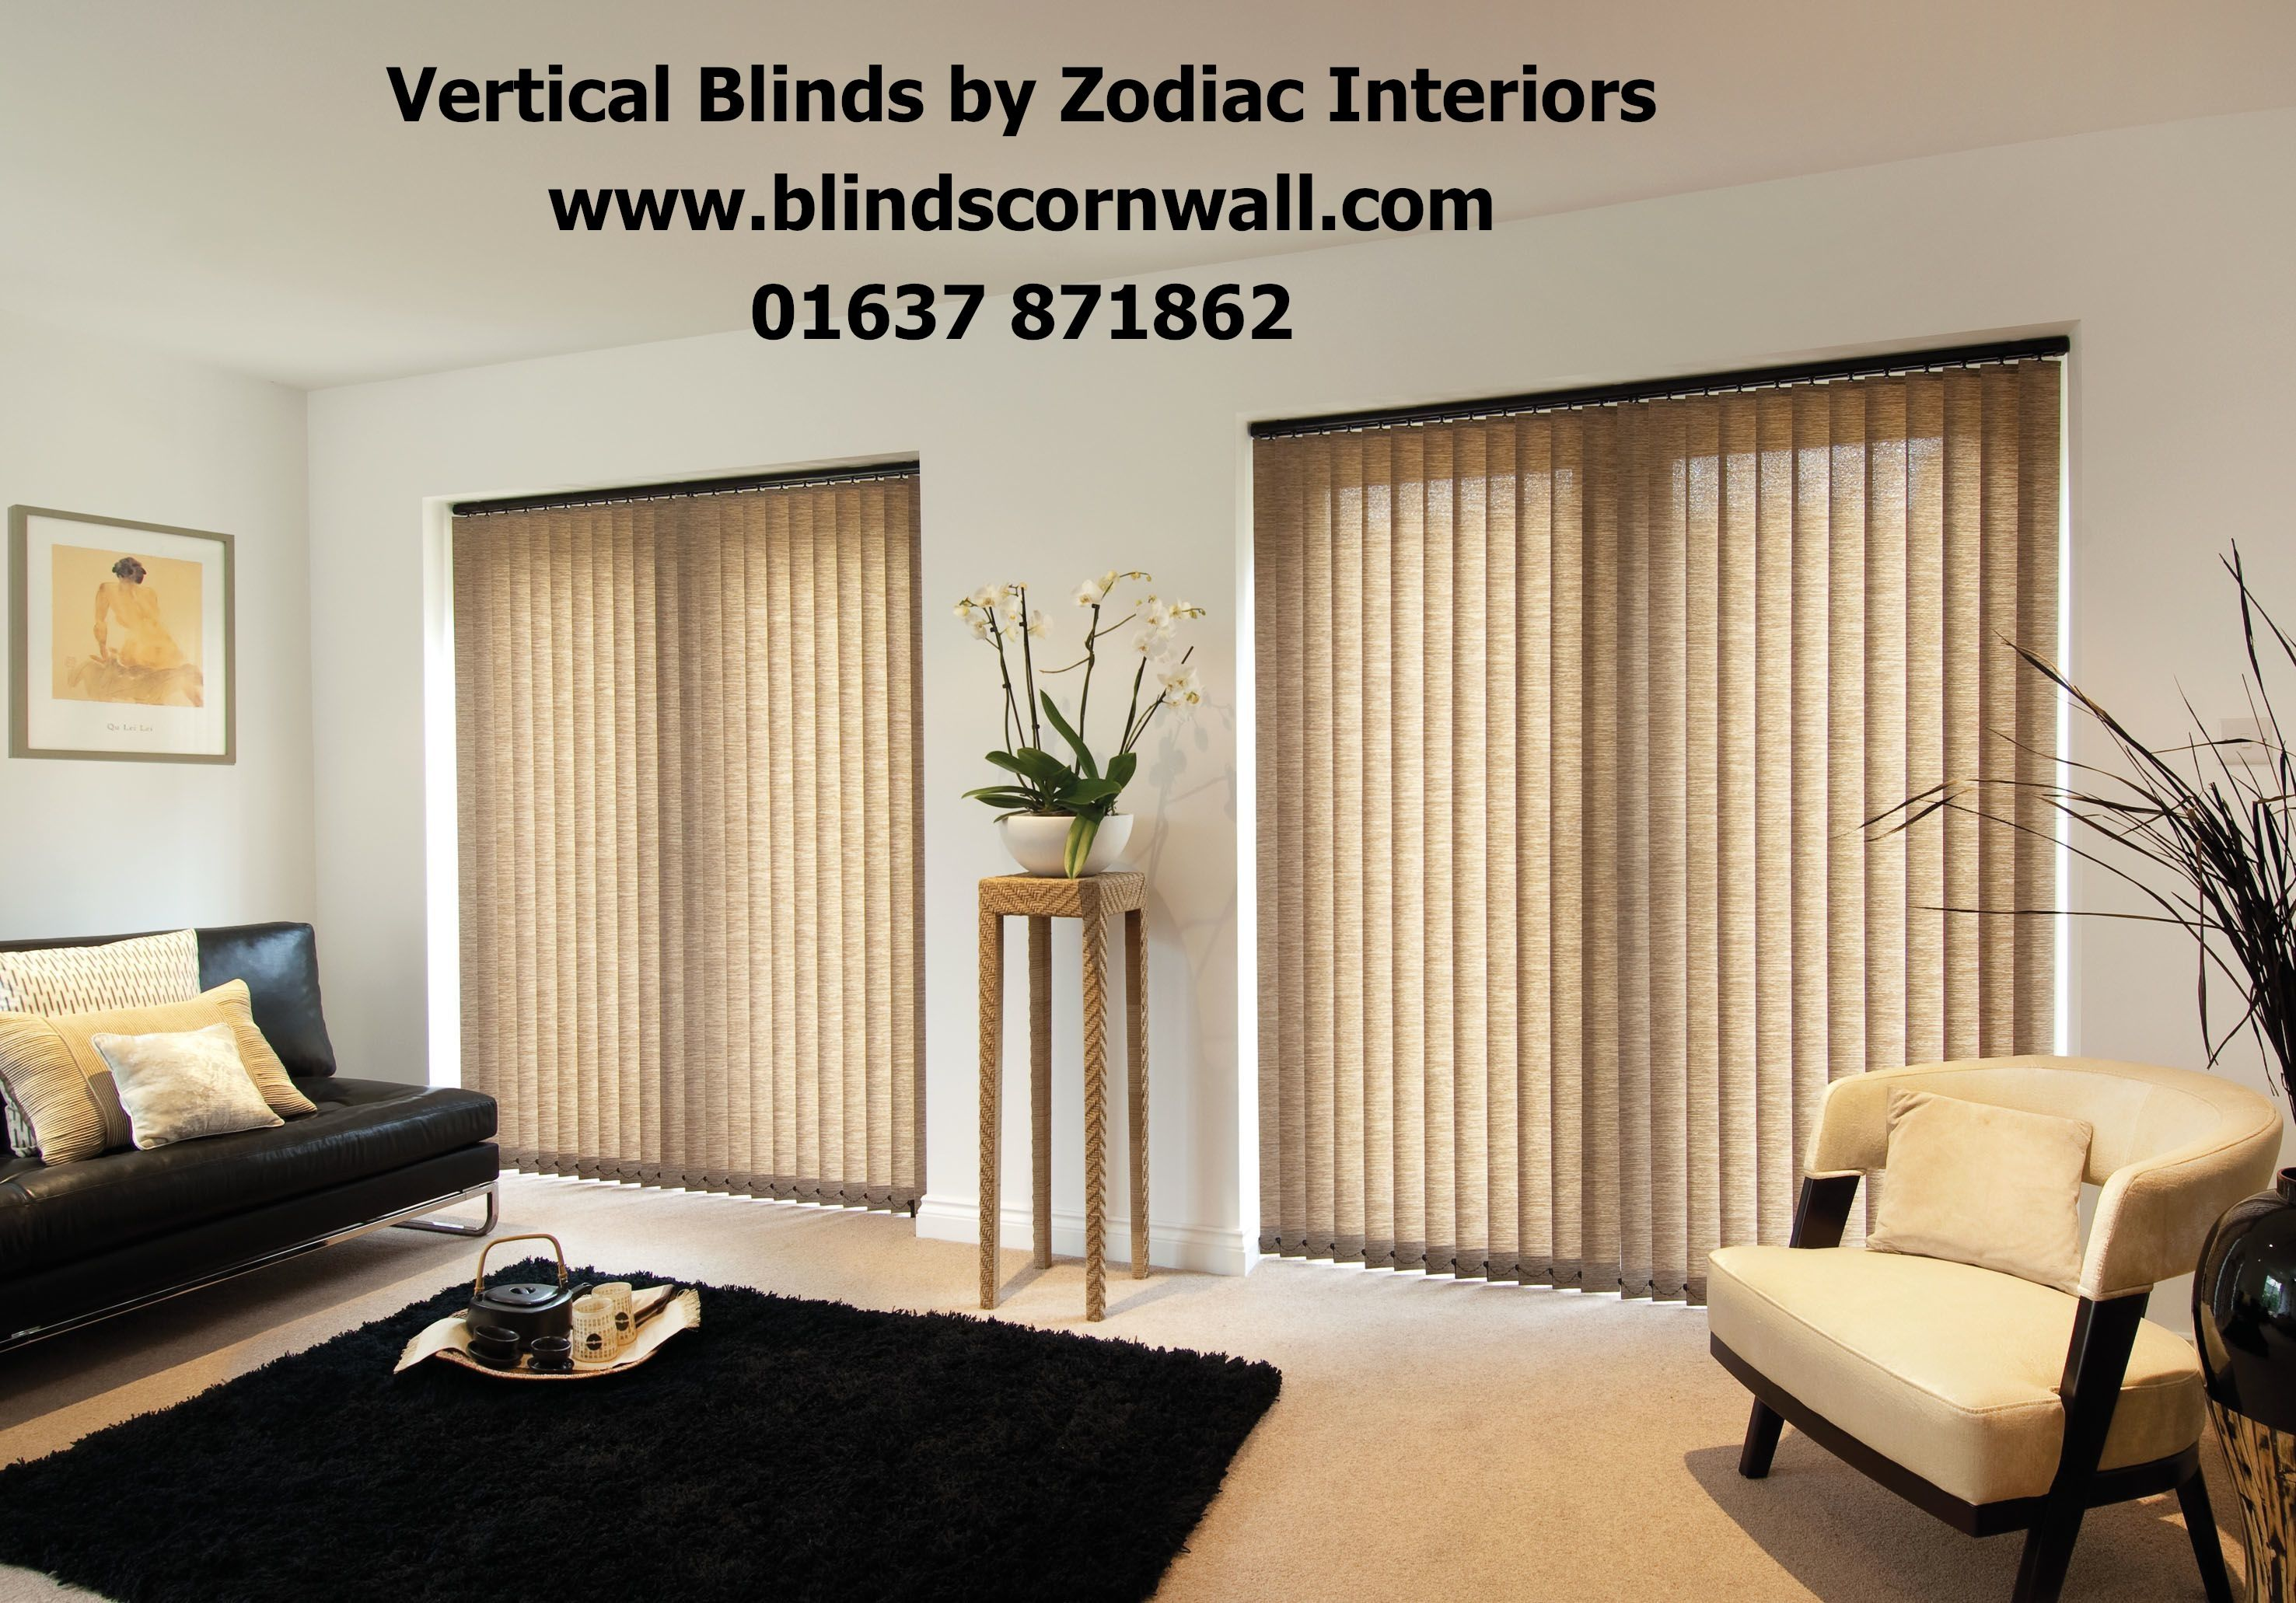 Vertical Blinds Are A Great Way To Dress Your Windows